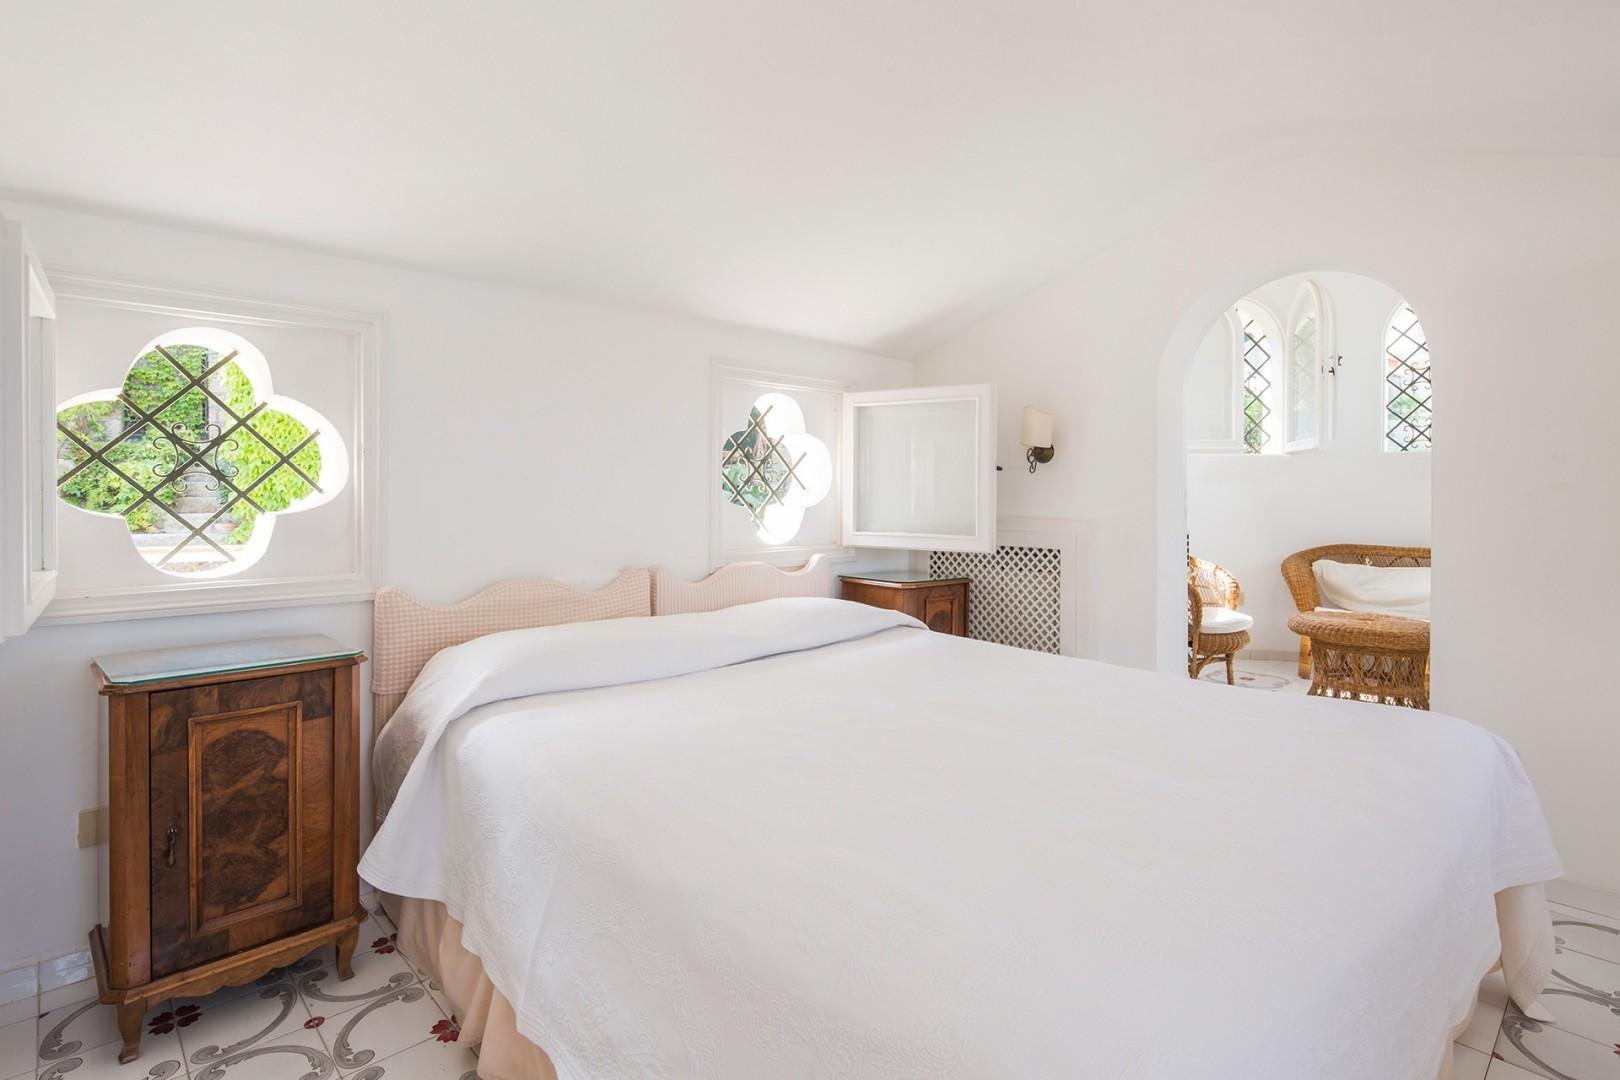 On the second floor, bedroom 3 has two beds that can be joined to form one large bed.